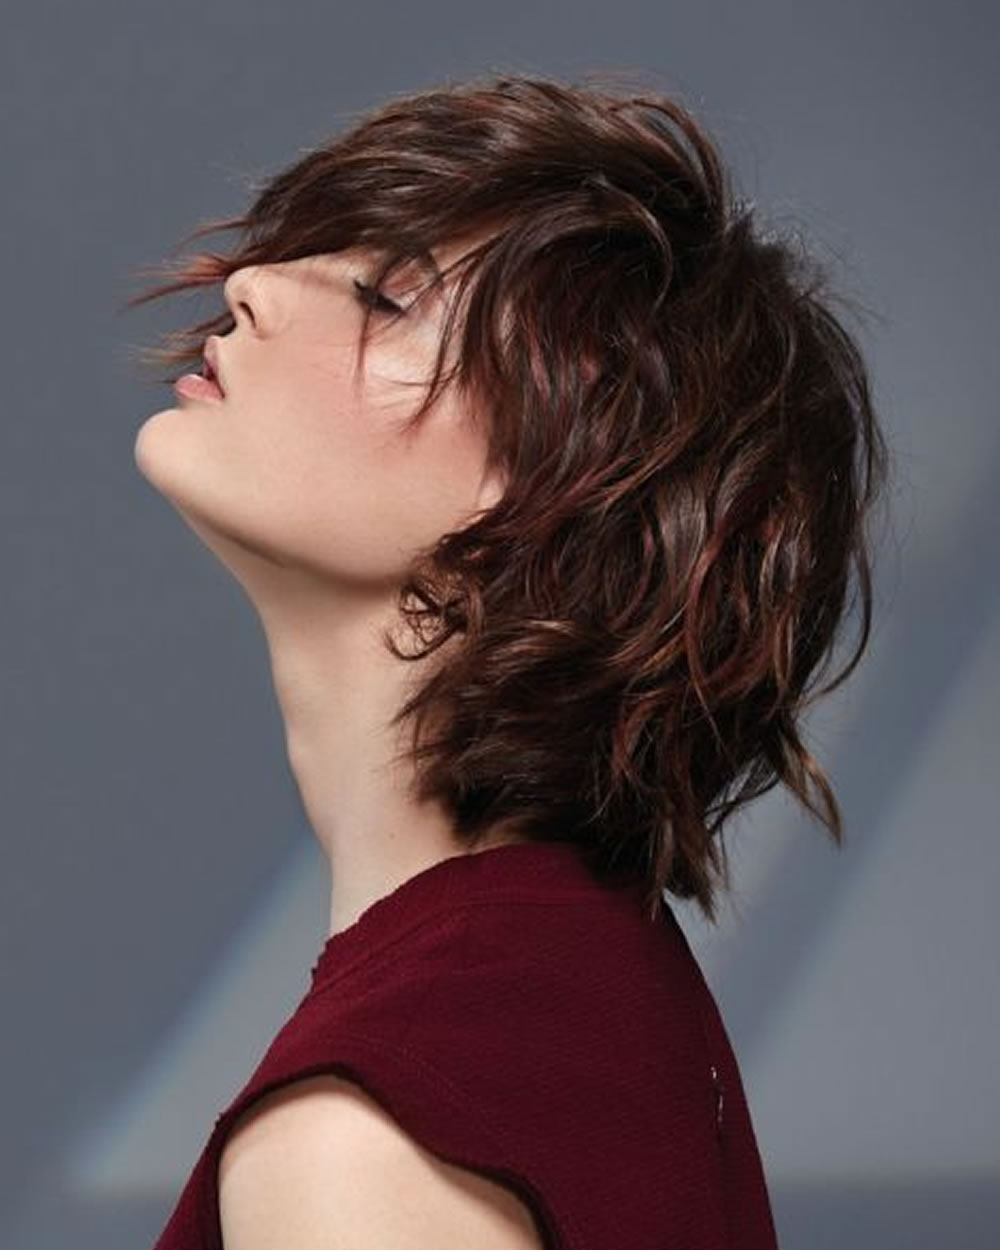 Hair Cuts : Bob Haircuts For Round Faces And Fine Hair Thick Female Throughout Medium Short Haircuts For Round Faces (View 23 of 25)